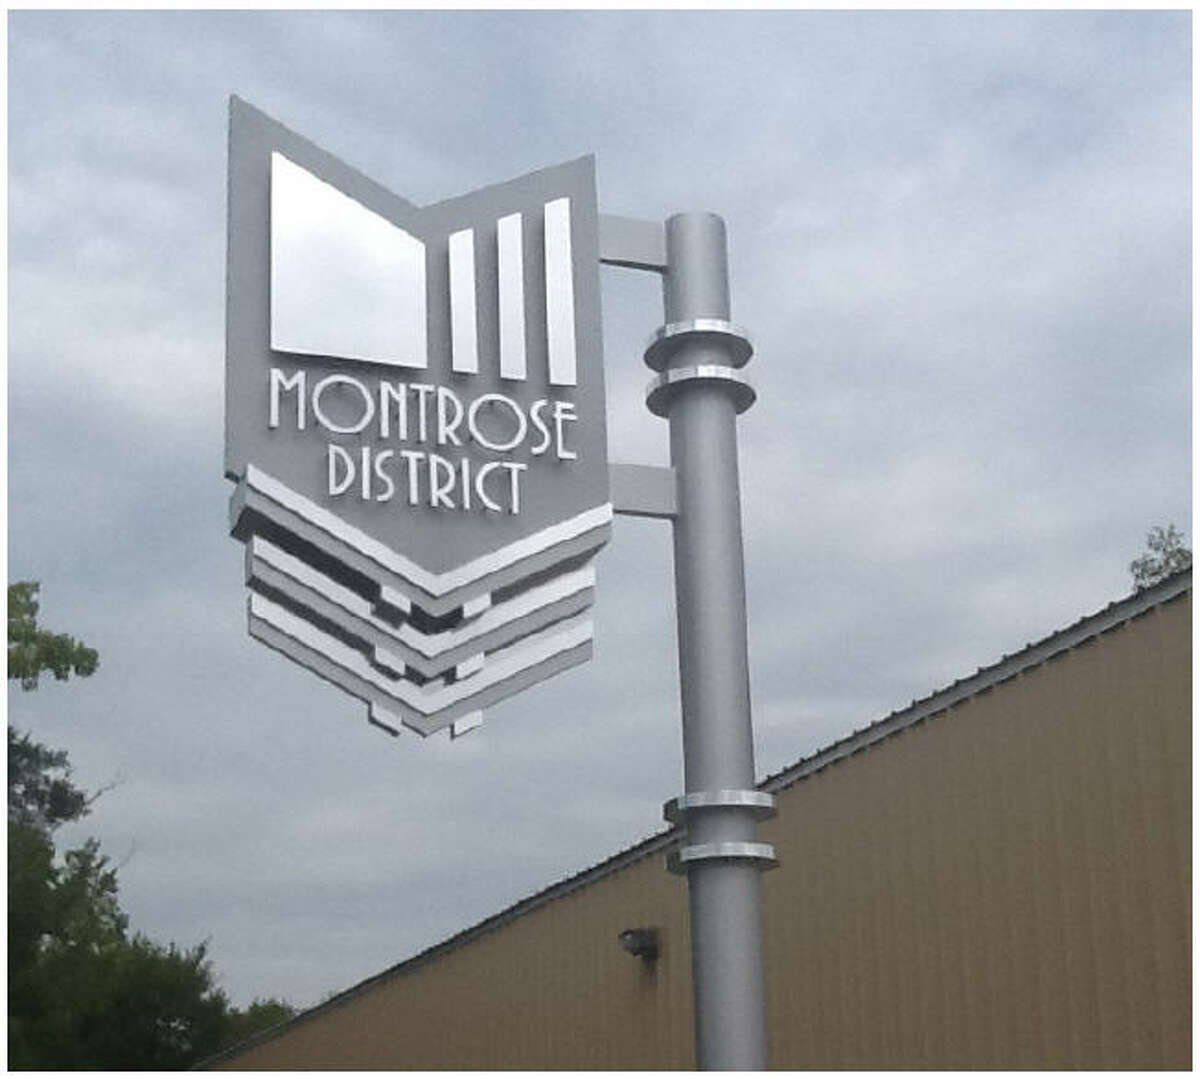 The district also installed signs and lighting throughout the neighborhood in the leadup to the Super Bowl in February.